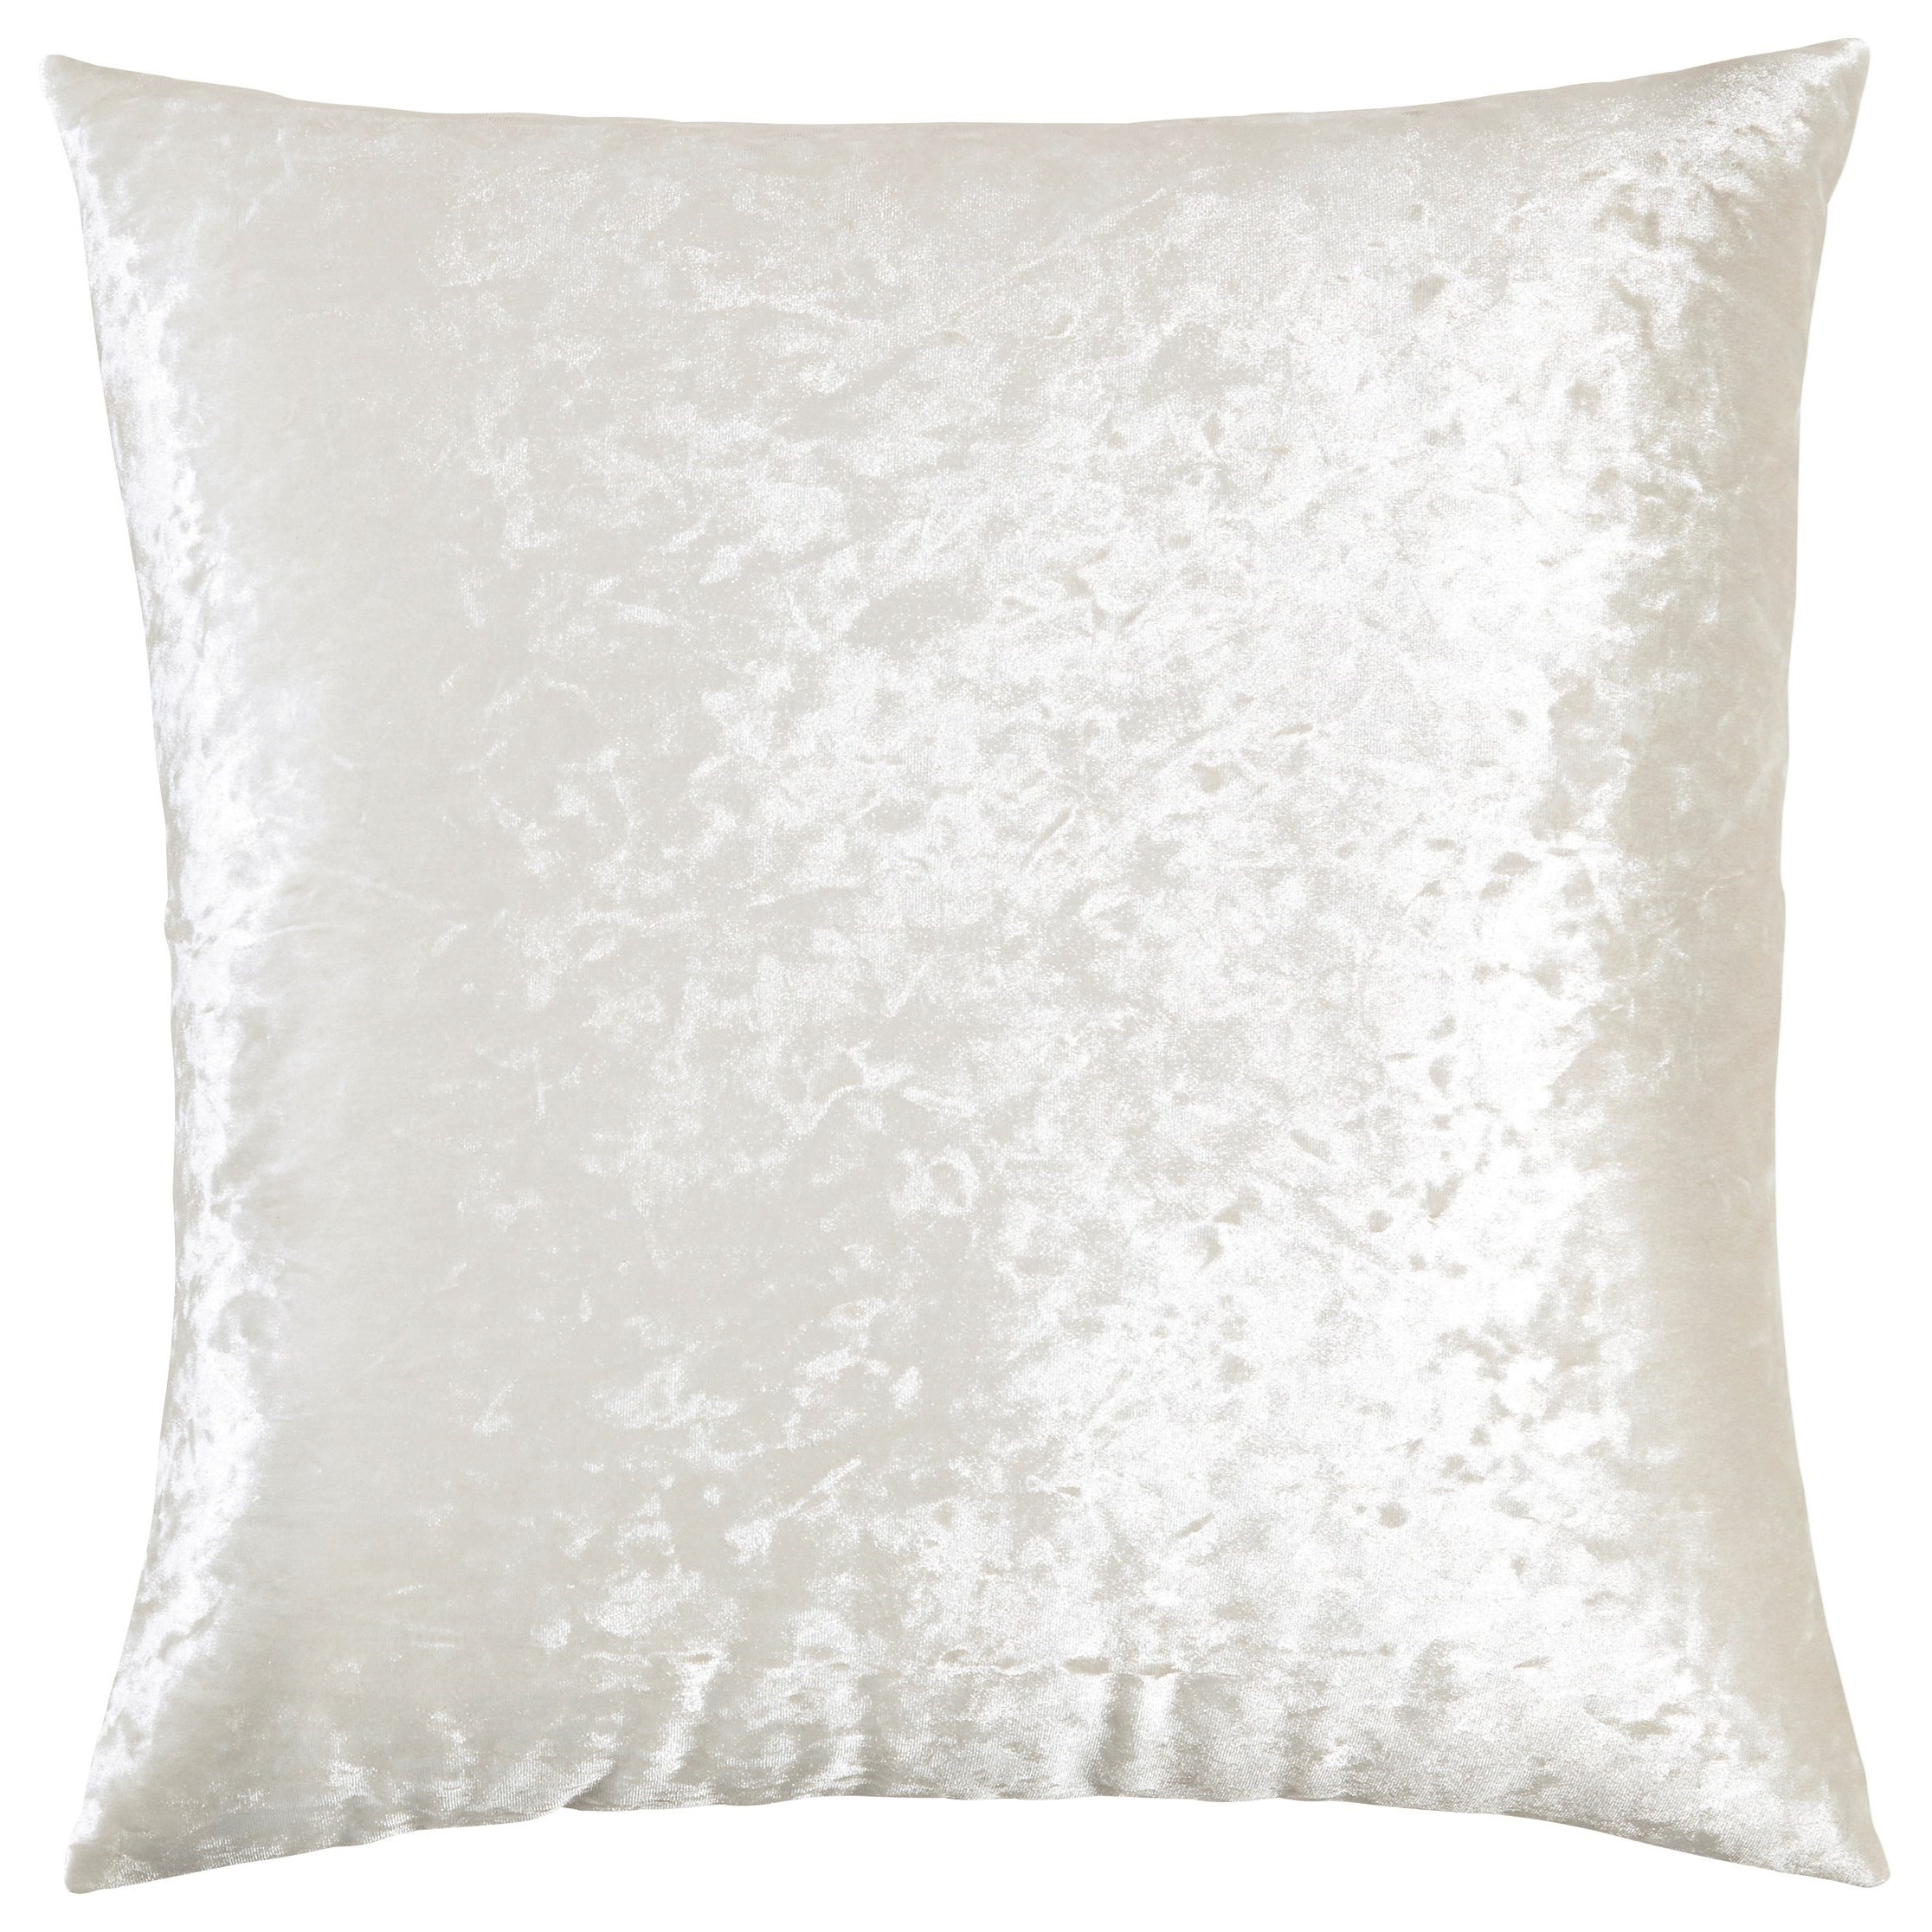 Pillows Misae Cream Pillow by Signature Design by Ashley at Dream Home Interiors